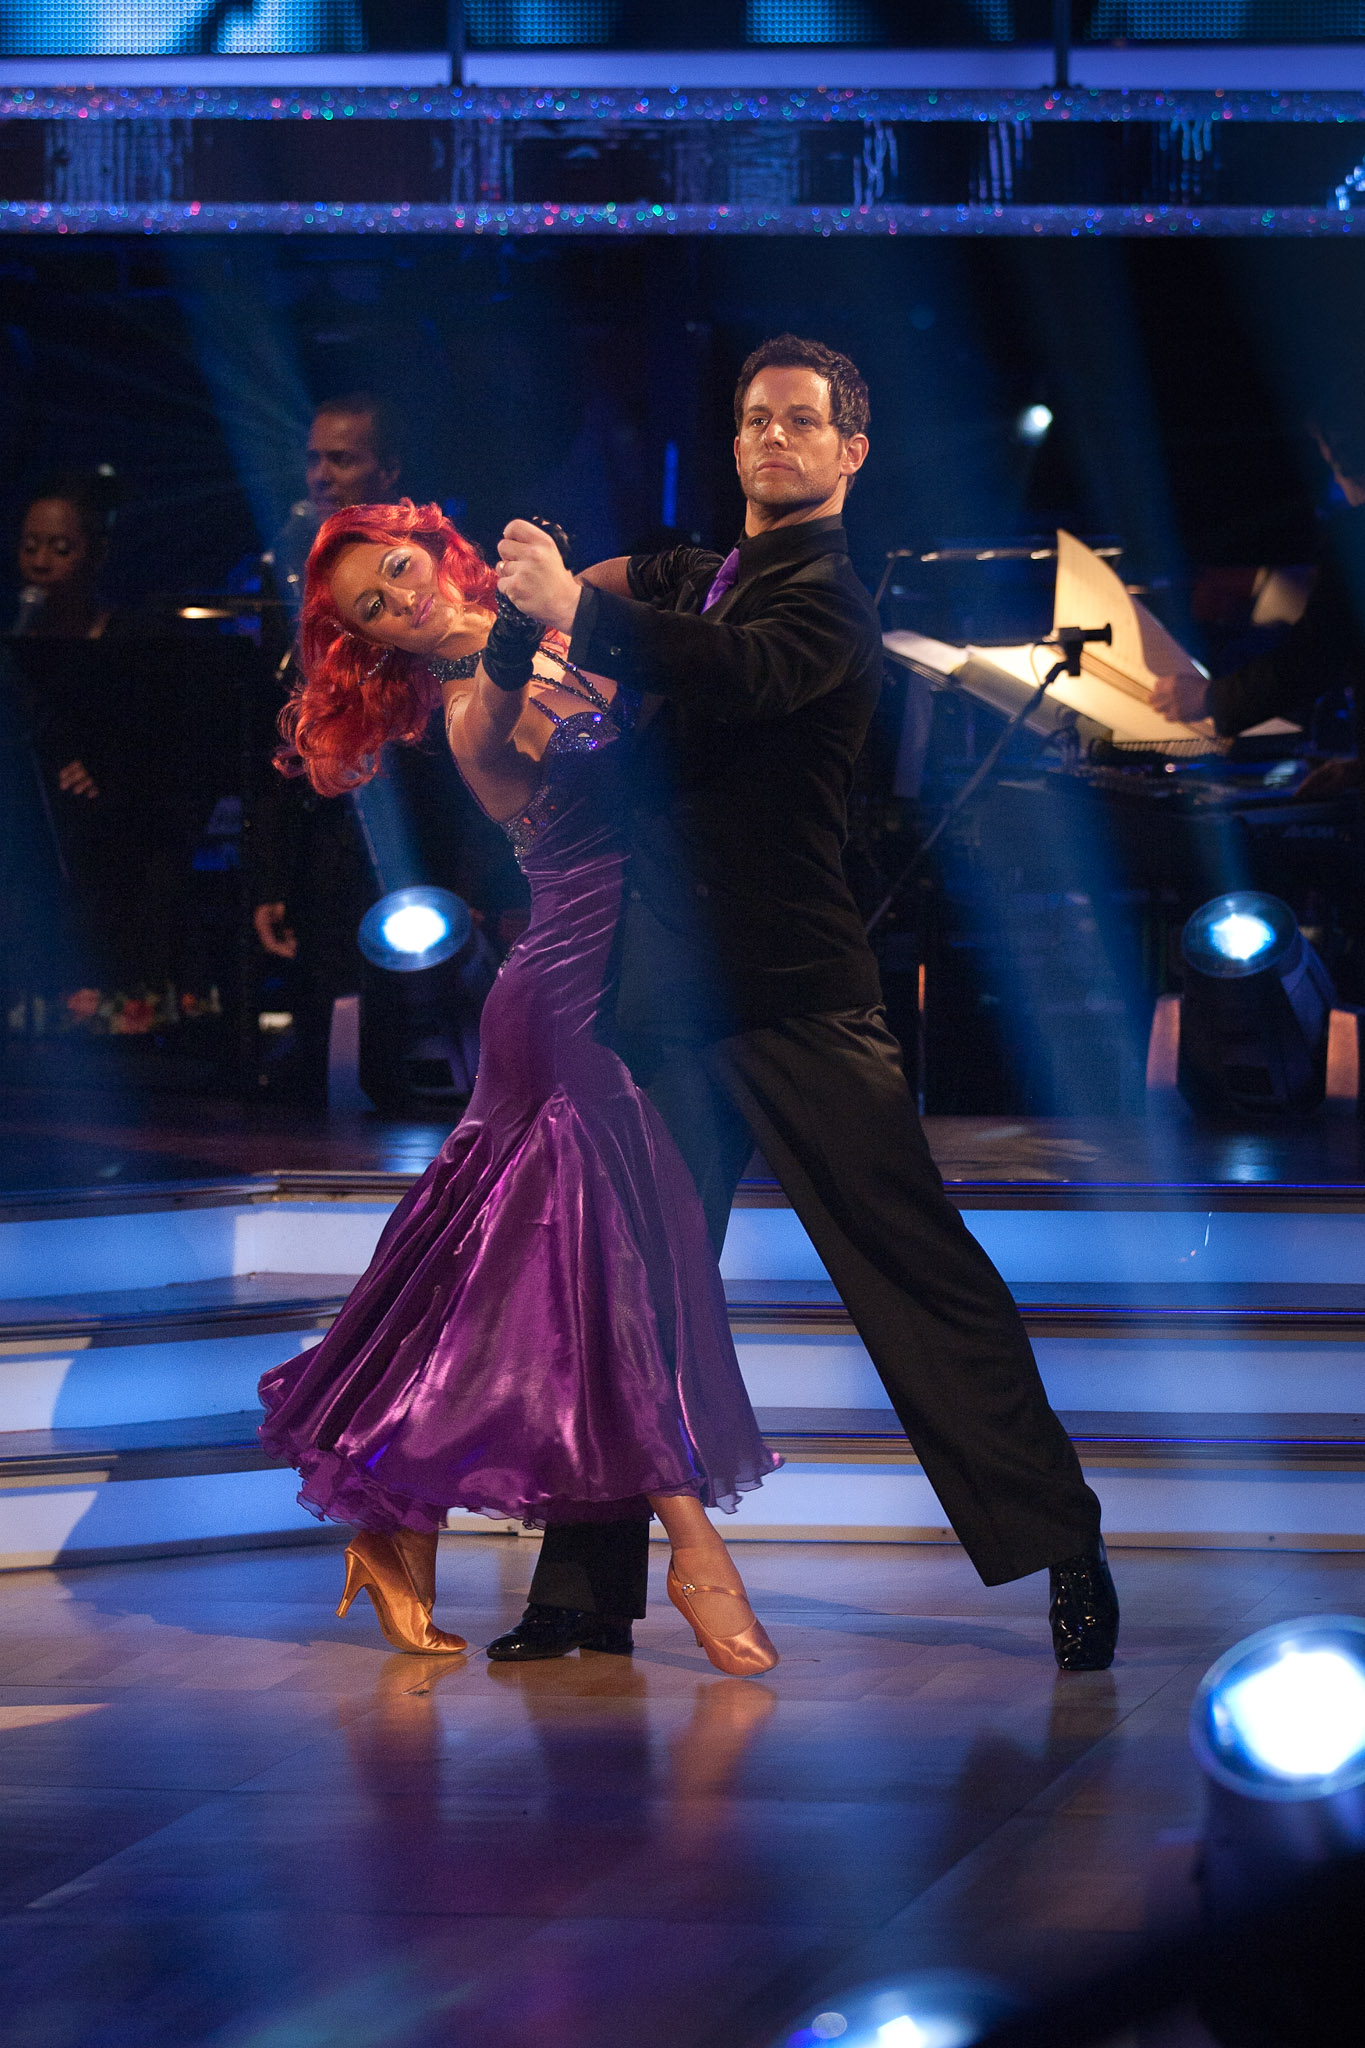 BBC Strictly Come Dancing 2010 contestant Matt Baker and his professional partner, dancer Aliona Vilani. Production picture courtesy of the BBC.